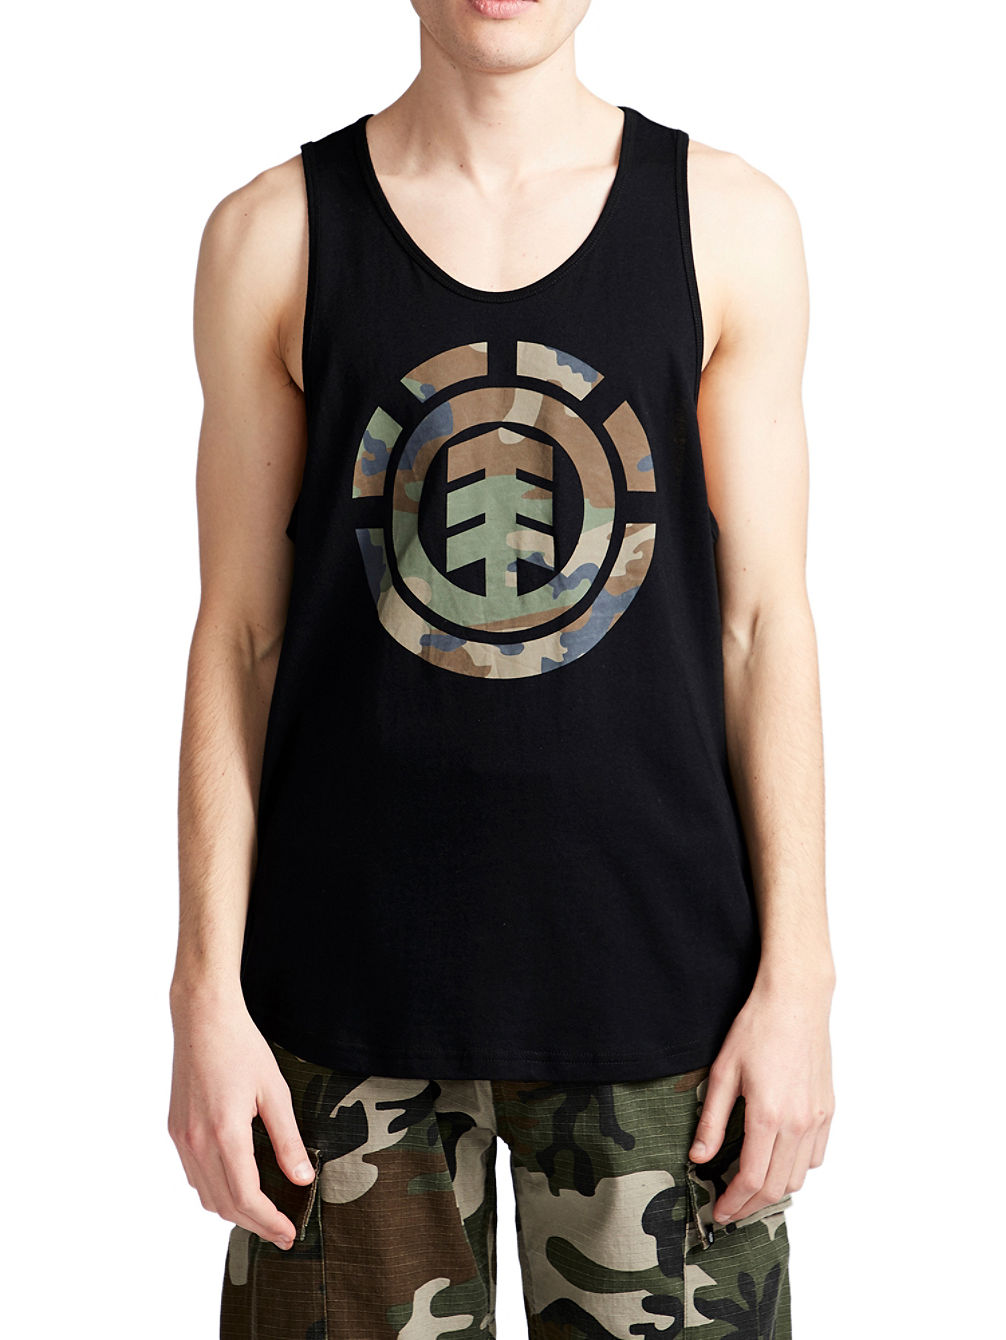 Foundation Icon Tank Top